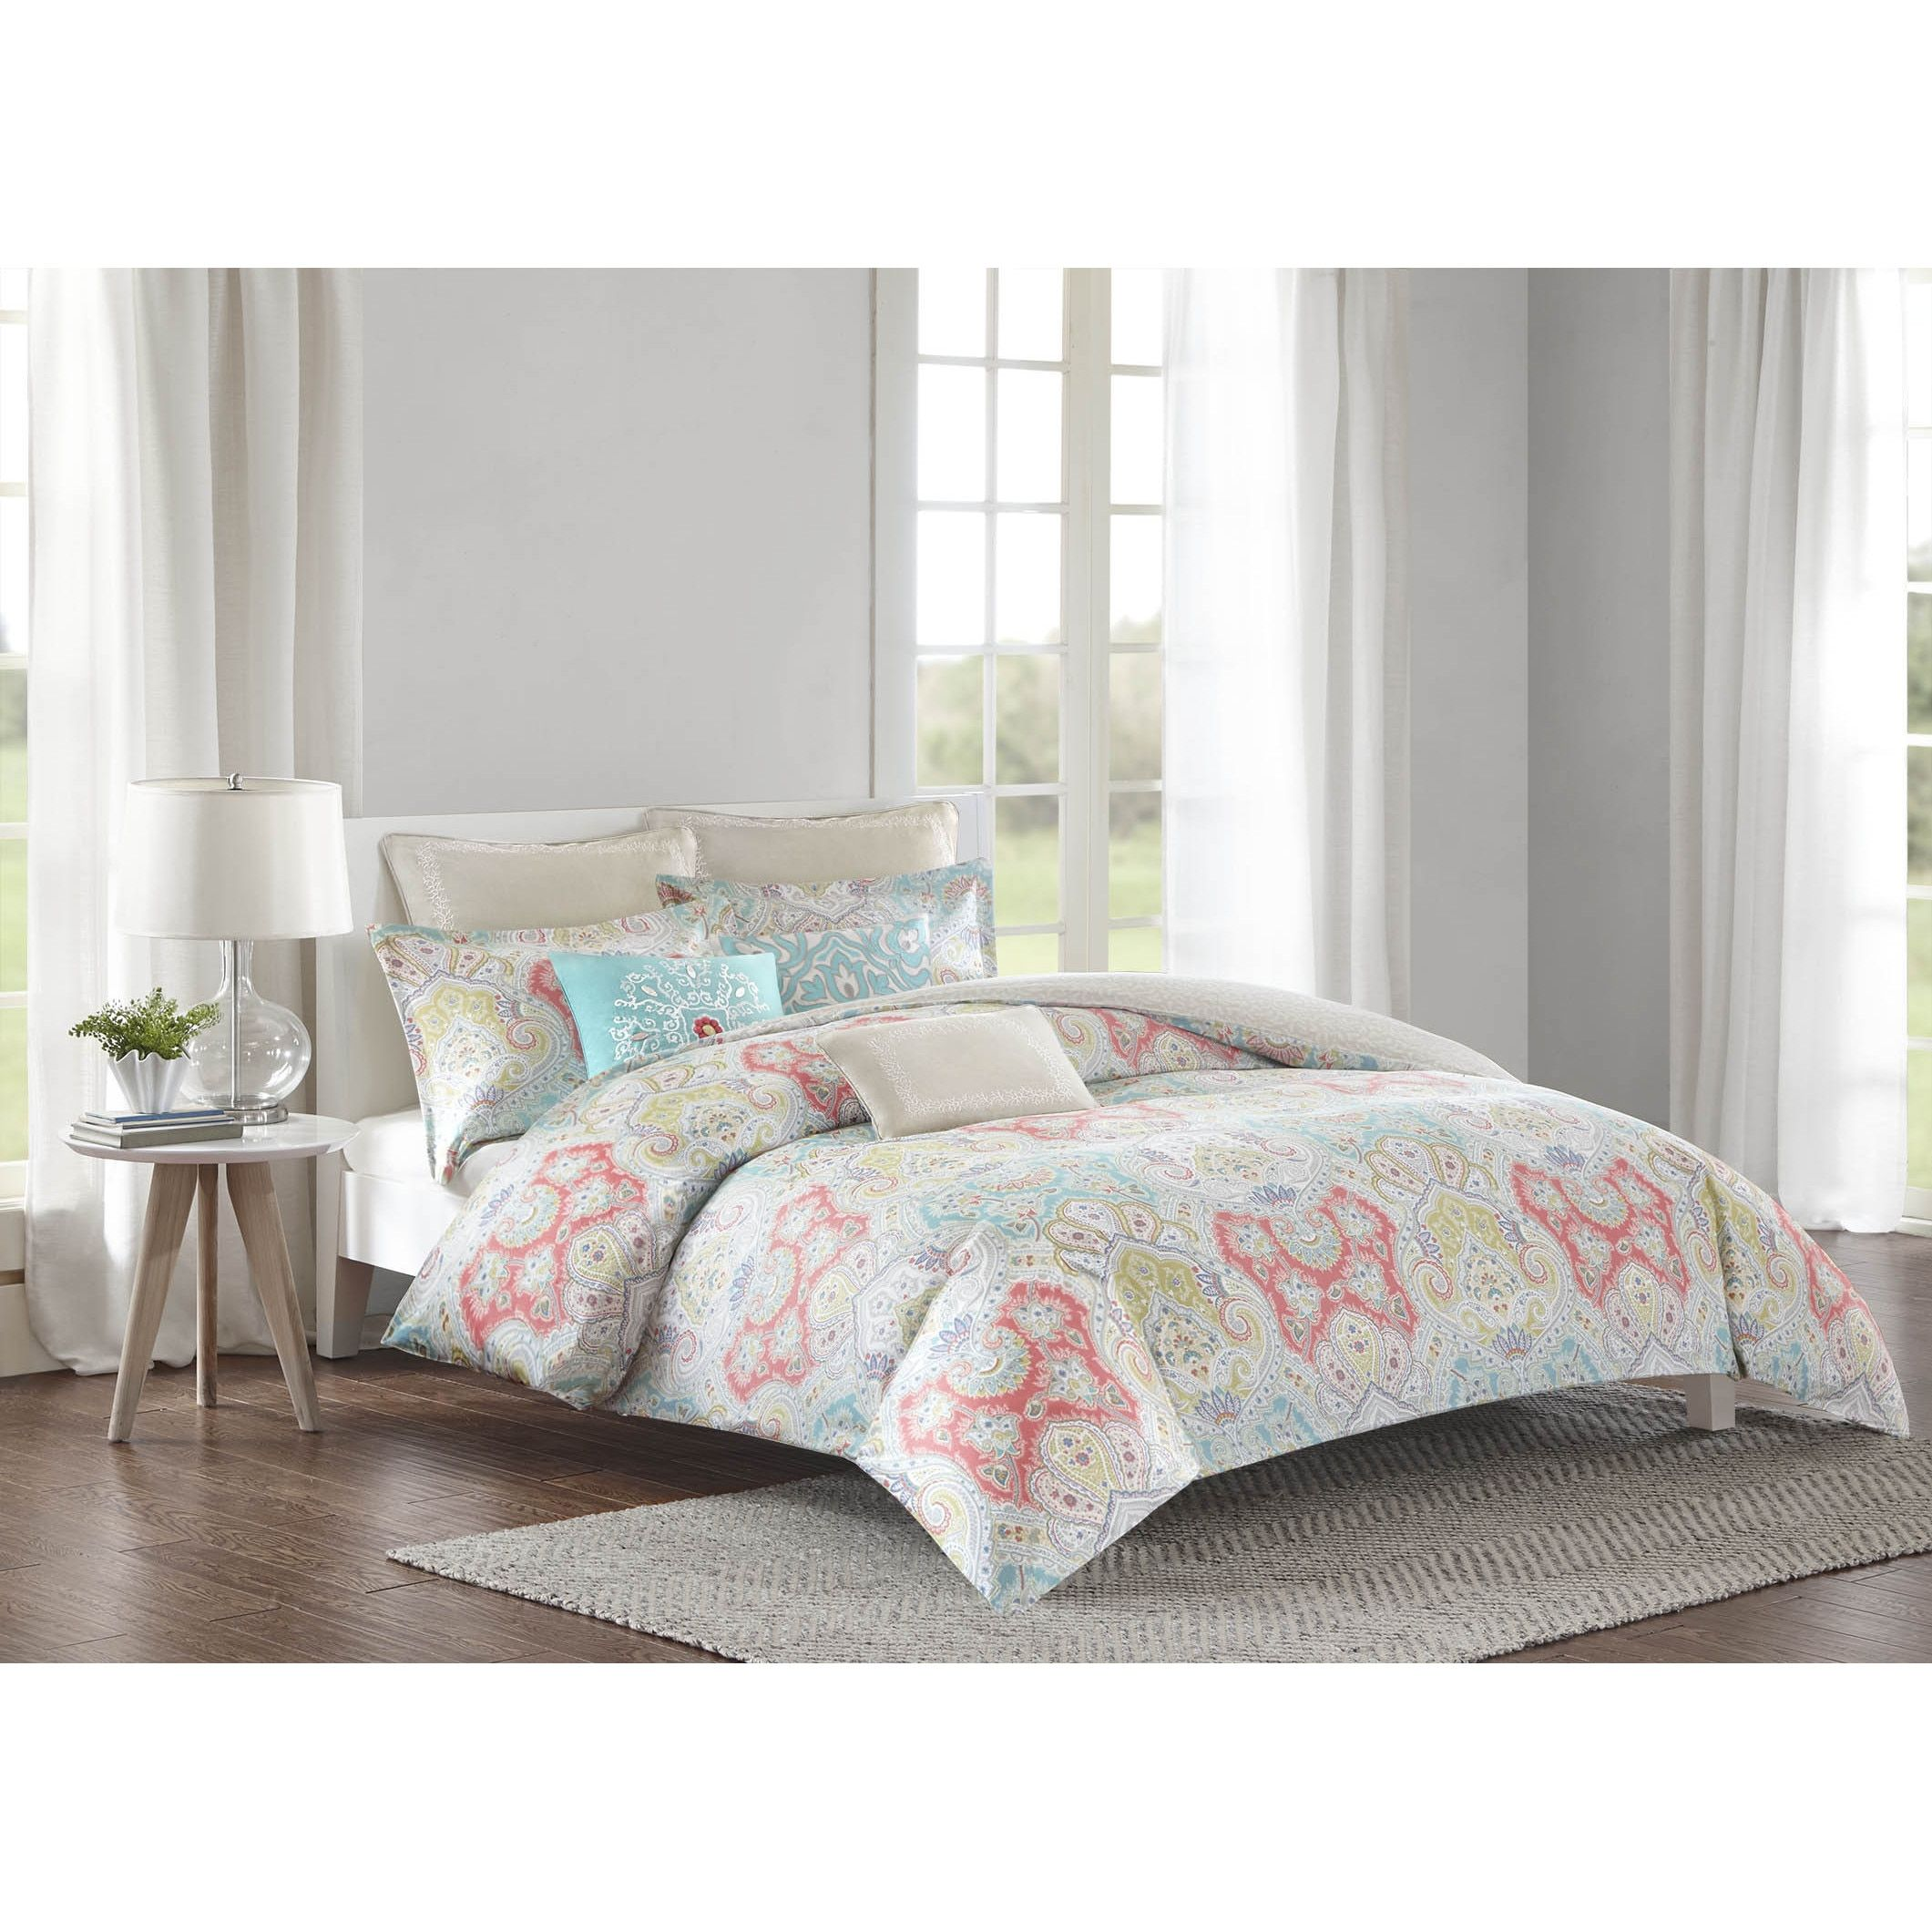 set uk and melody bedding sets pink covers mixed duvet mix prd cotton ireland